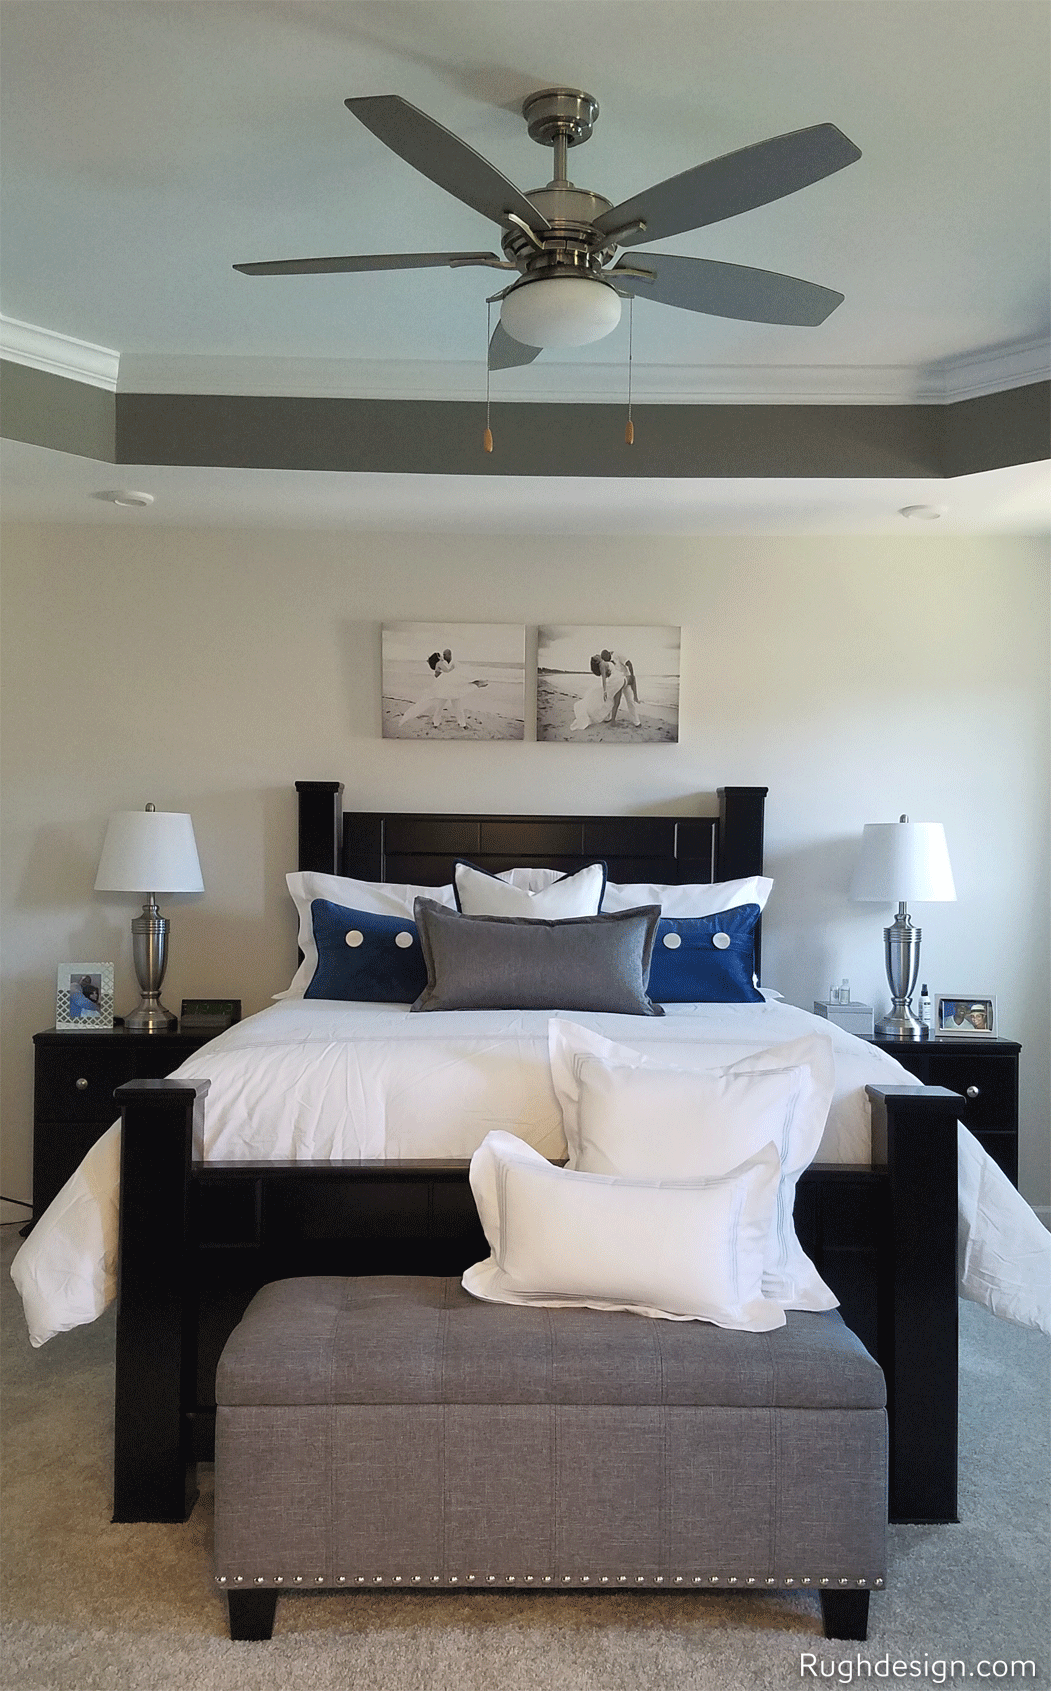 Dovetail ceiling tray with City Loft walls in bedroom